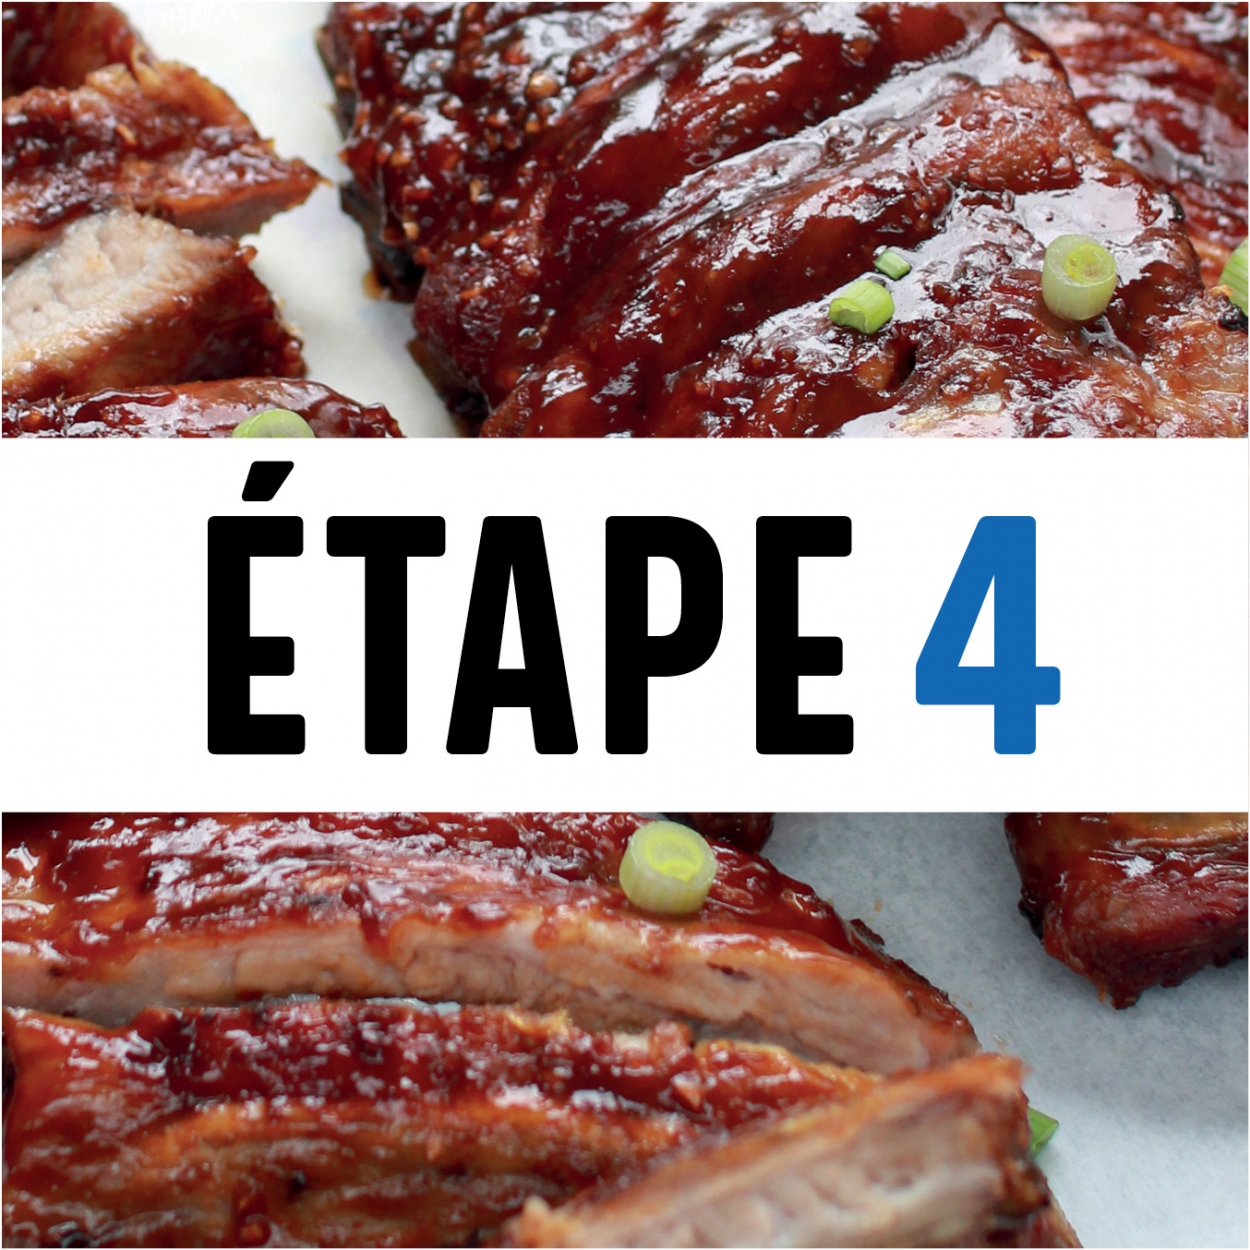 Slow cooking étape 4